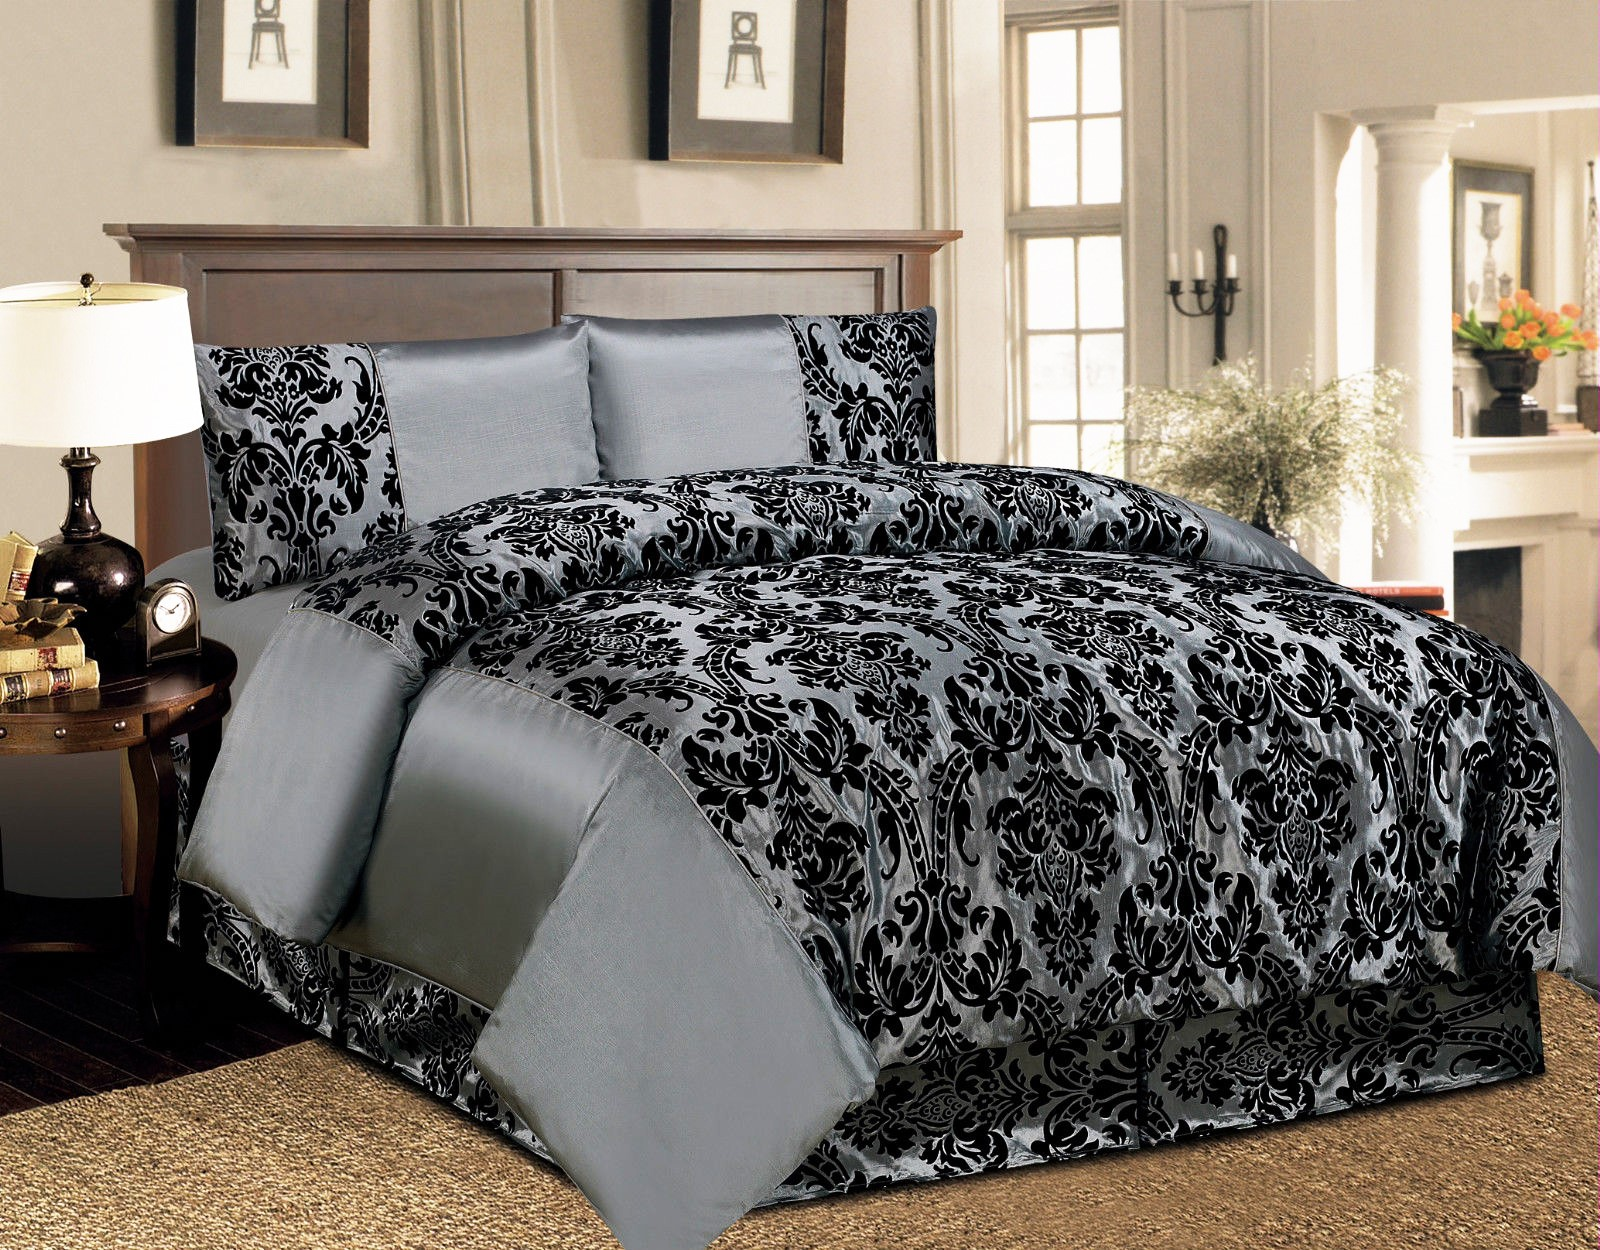 4 pcs duvet cover damask quilted luxury bedding comforter set with bed sheet uk ebay. Black Bedroom Furniture Sets. Home Design Ideas